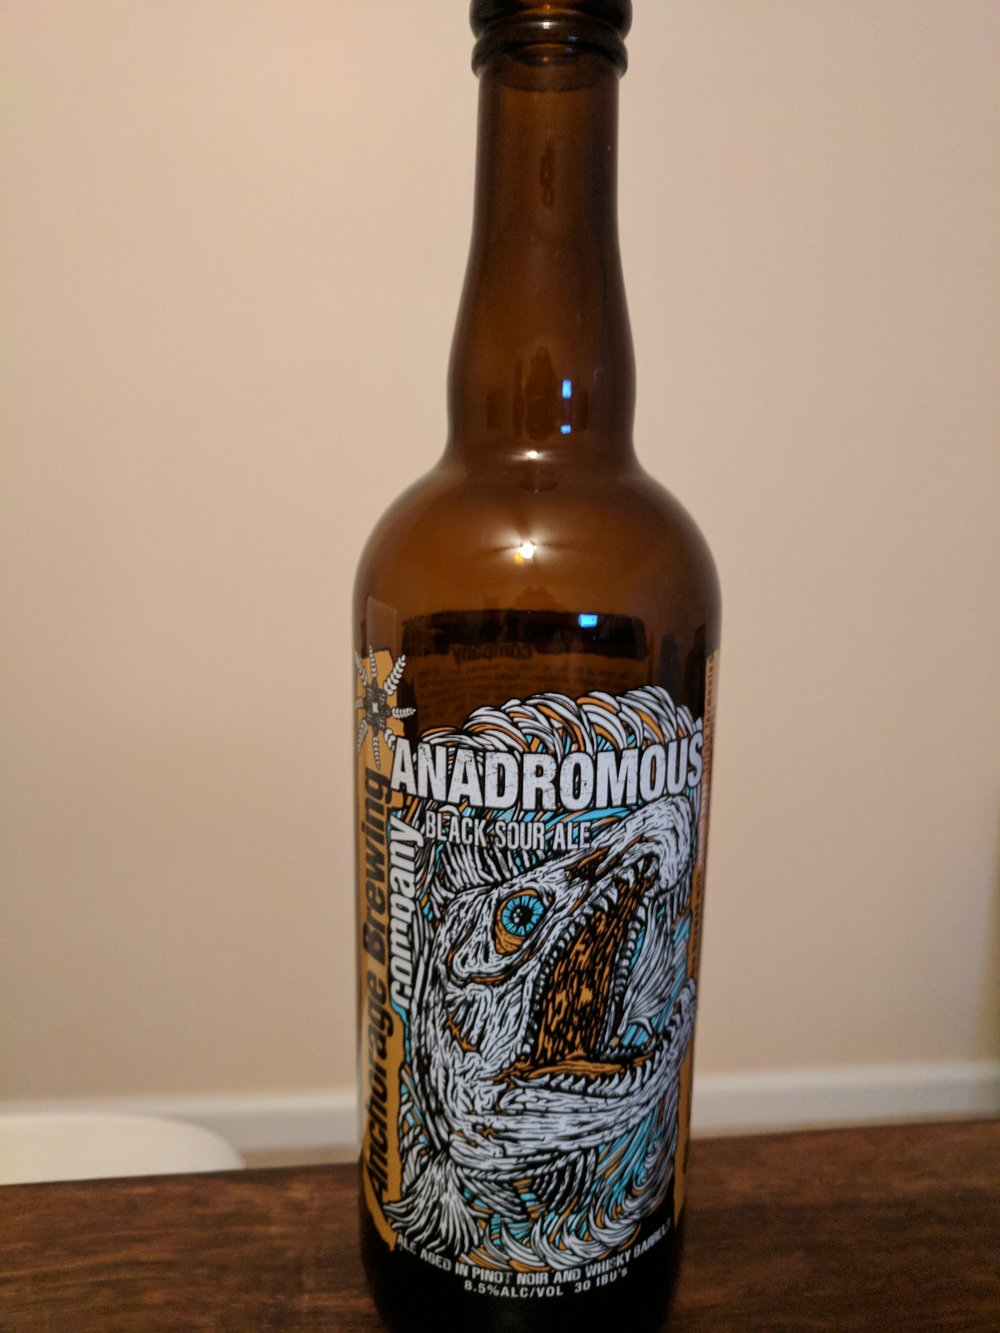 Anchorage Brewing Anadromous - The Anchorage Brewing Anadromous is a Black Sour Ale.  We tasted this beer on Episode 14, where you can hear our live thoughts and impressions.  This beer can be a bit of a novelty to some, while being a bit harsh to others.  It has the appearance of a dark stout, but the body and flavor of a much lighter ale.  It has a head that is conducive of a normal sour ale.  The aroma leaves much to be desired, personally; particularly because I am such a fan of sour beers.  With that being said, this beer delivers on its sour flavor, while still maintaining a bit of that roastiness from the malt.  The sour just about overpowers the roasted malt that comes through.  As sours go, I prefer more